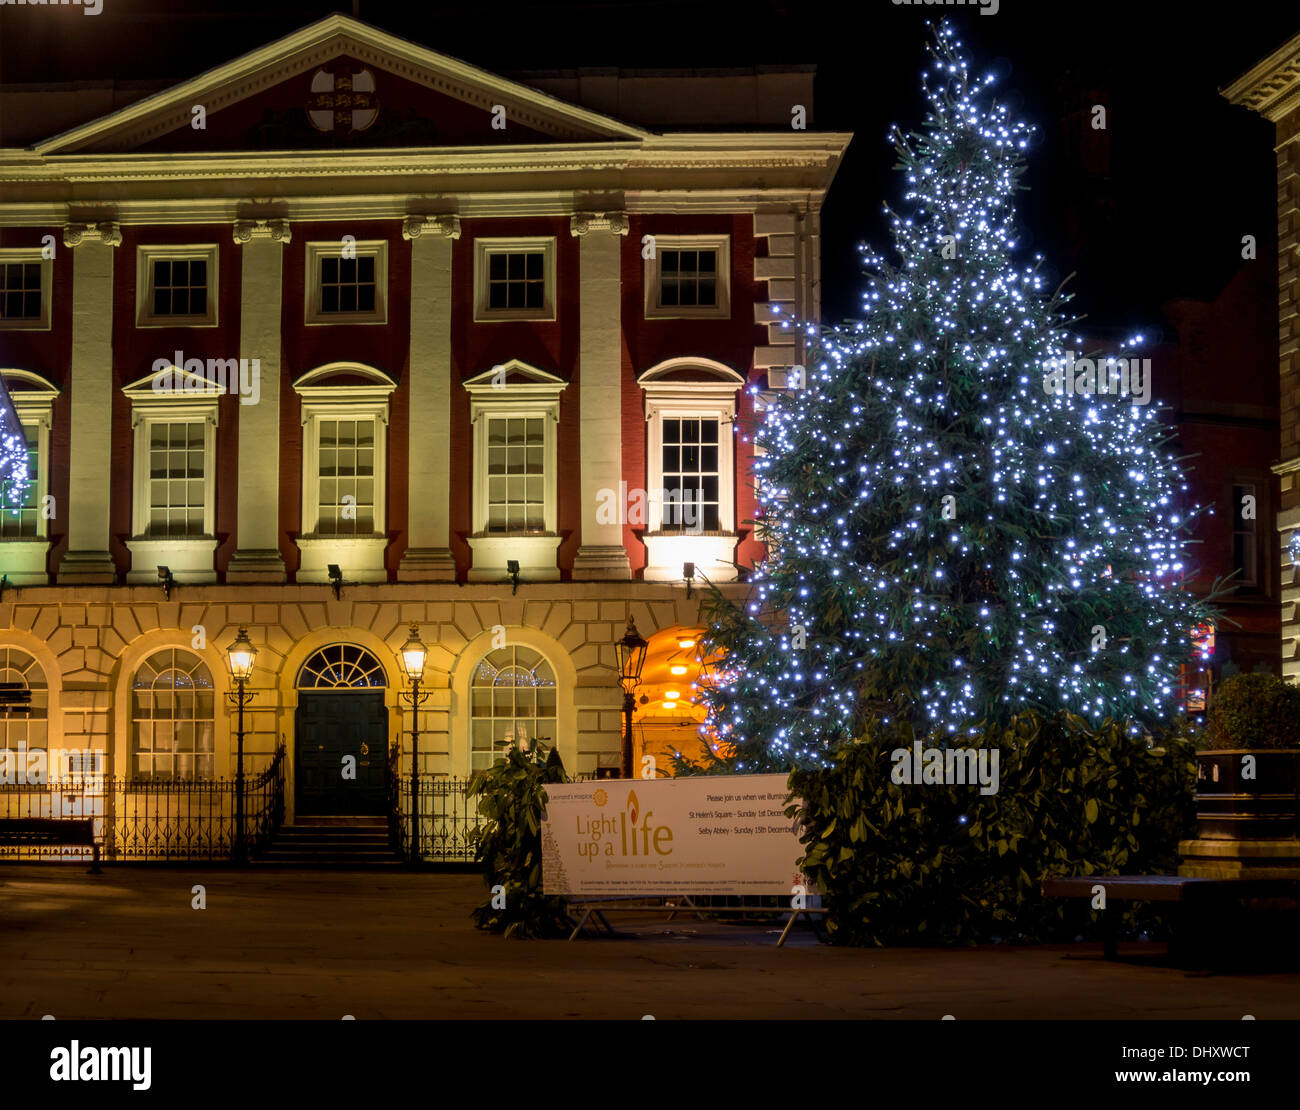 Christmas Tree With Lights Outside The Mansion House In York City Centre  2013.